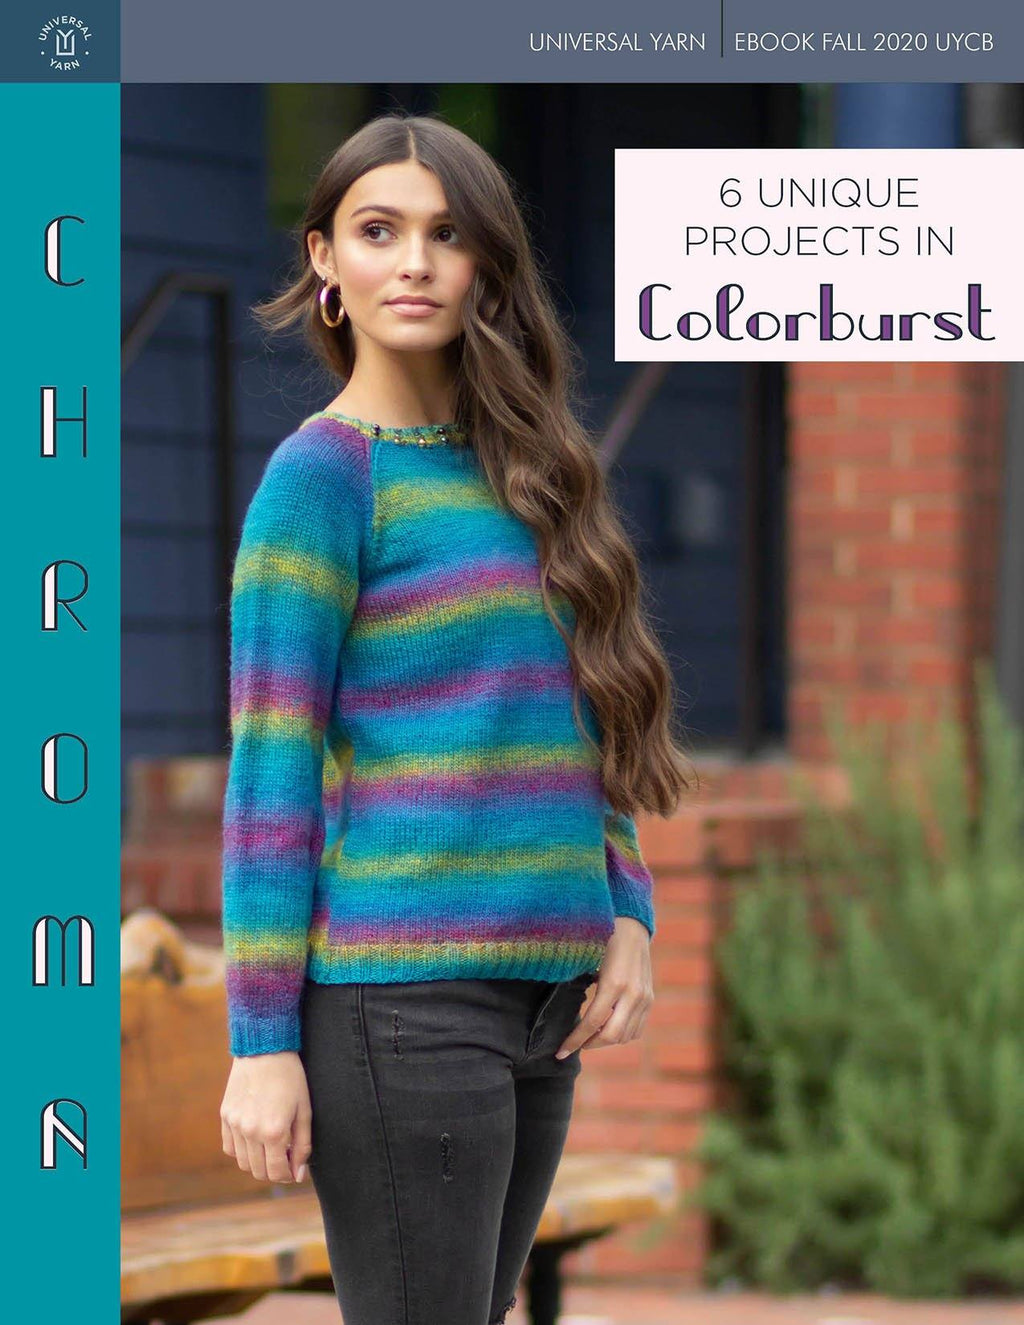 Chroma Pattern Universal Yarn